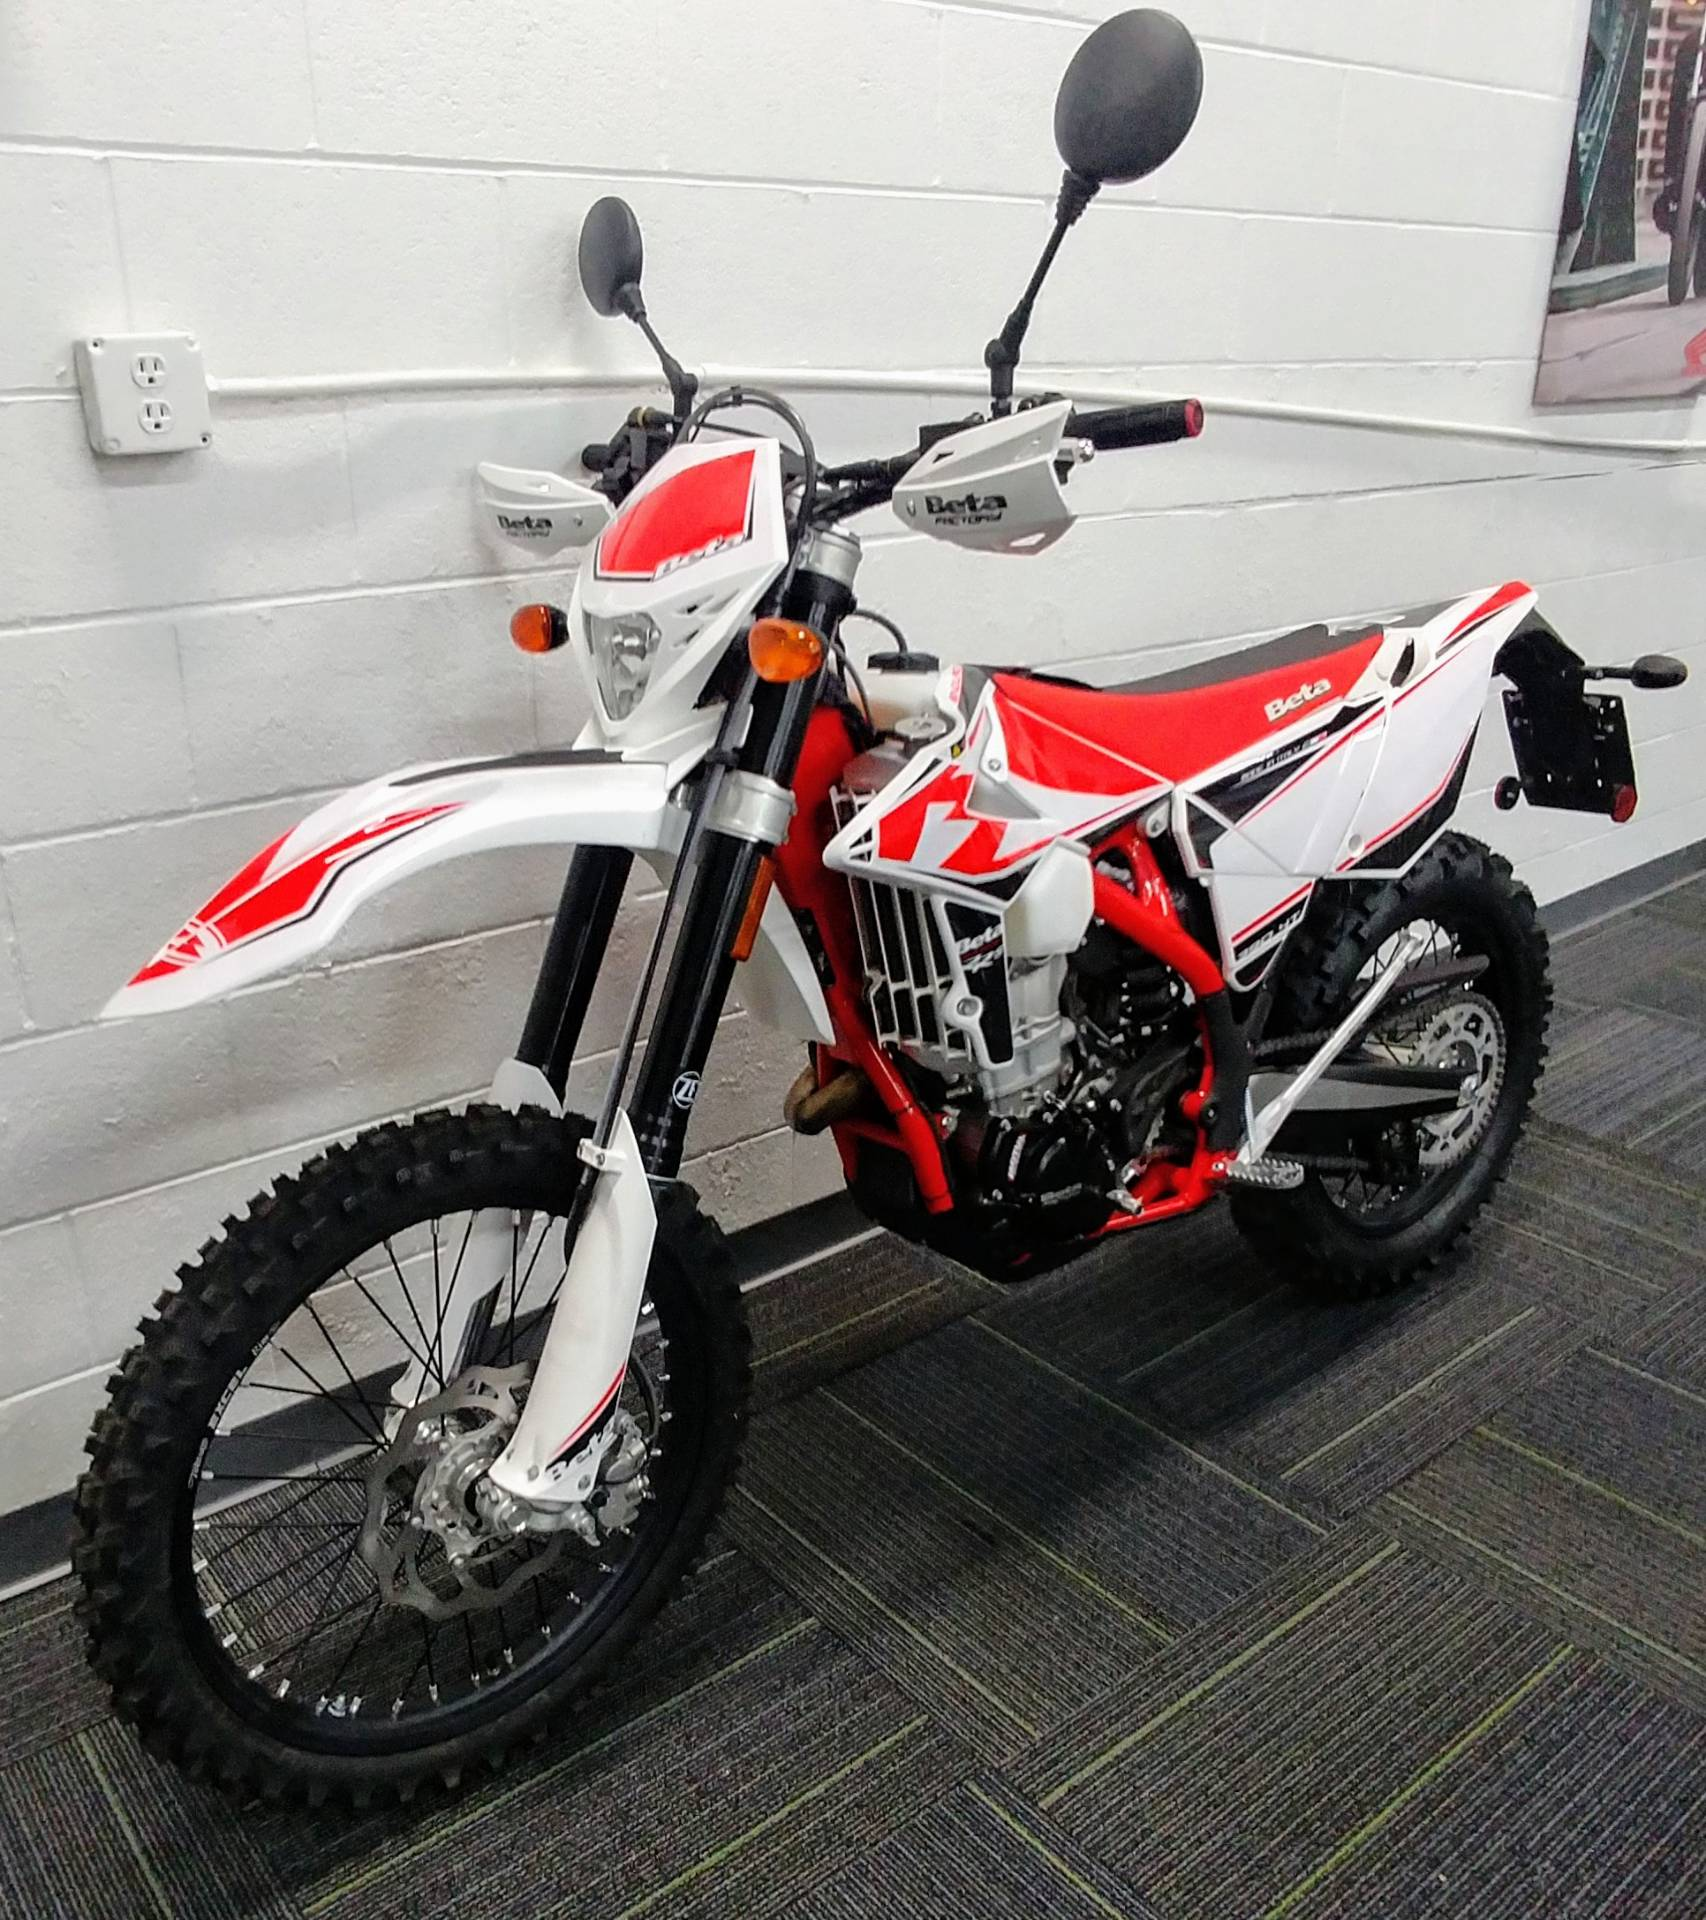 2019 Beta 390 RR-S 4-Stroke in Ontario, California - Photo 3